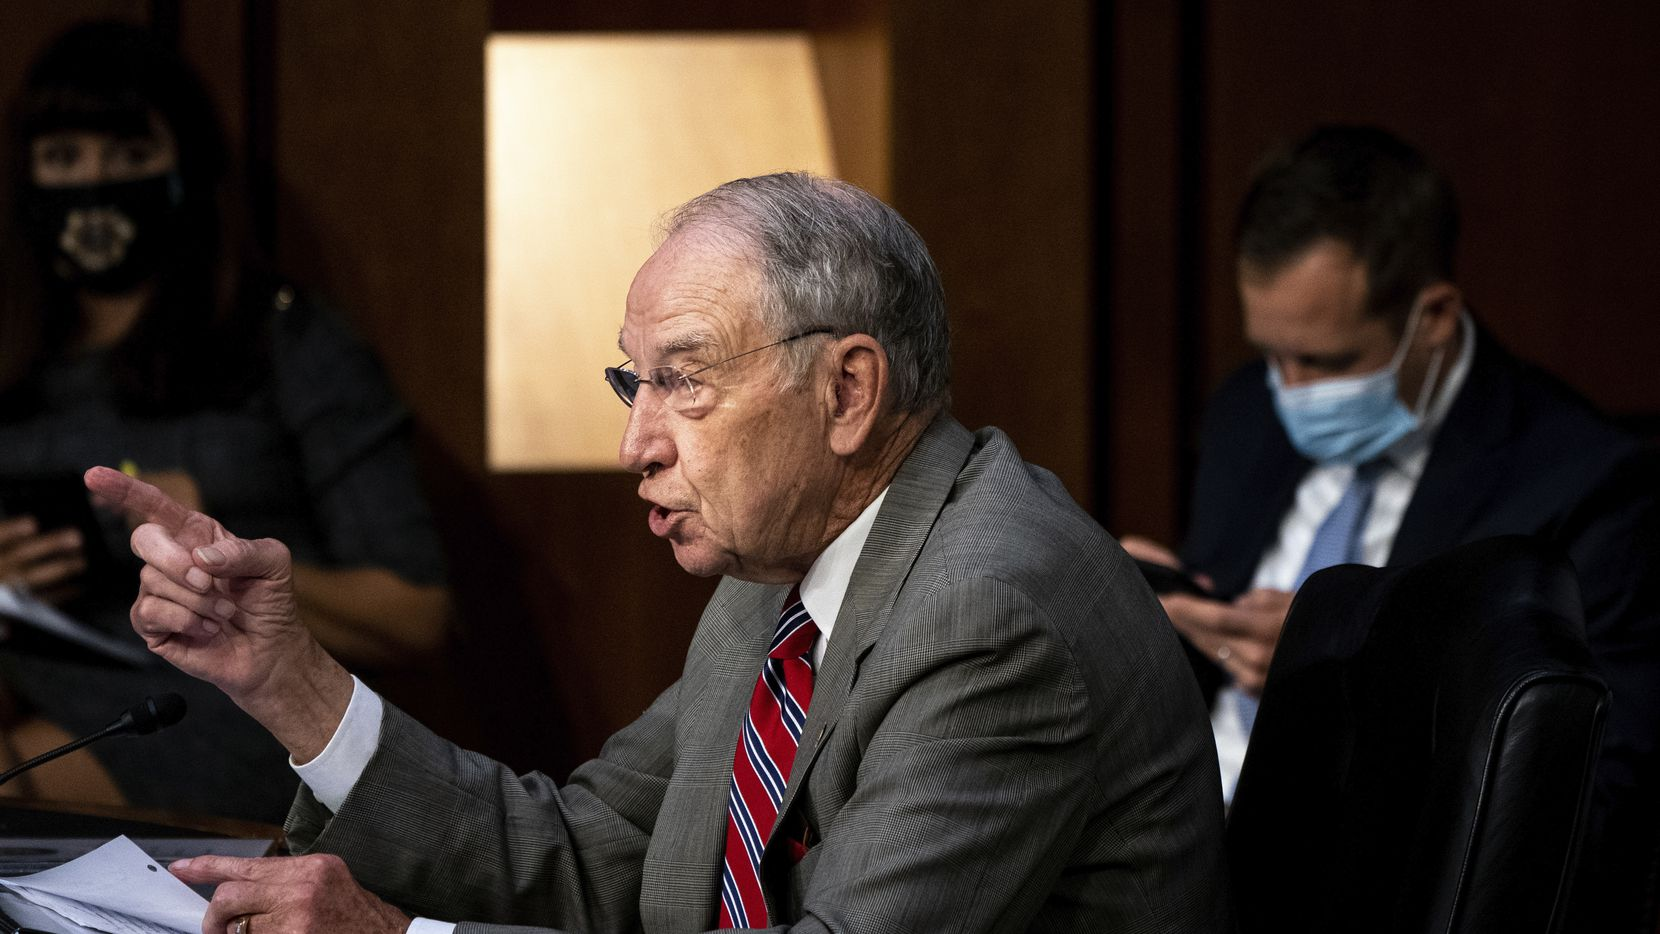 Sen. Charles Grassley, R-Iowa,, speaks during the confirmation hearing for Supreme Court nominee Amy Coney Barrett, before the Senate Judiciary Committee, Oct. 13, 2020, on Capitol Hill in Washington.